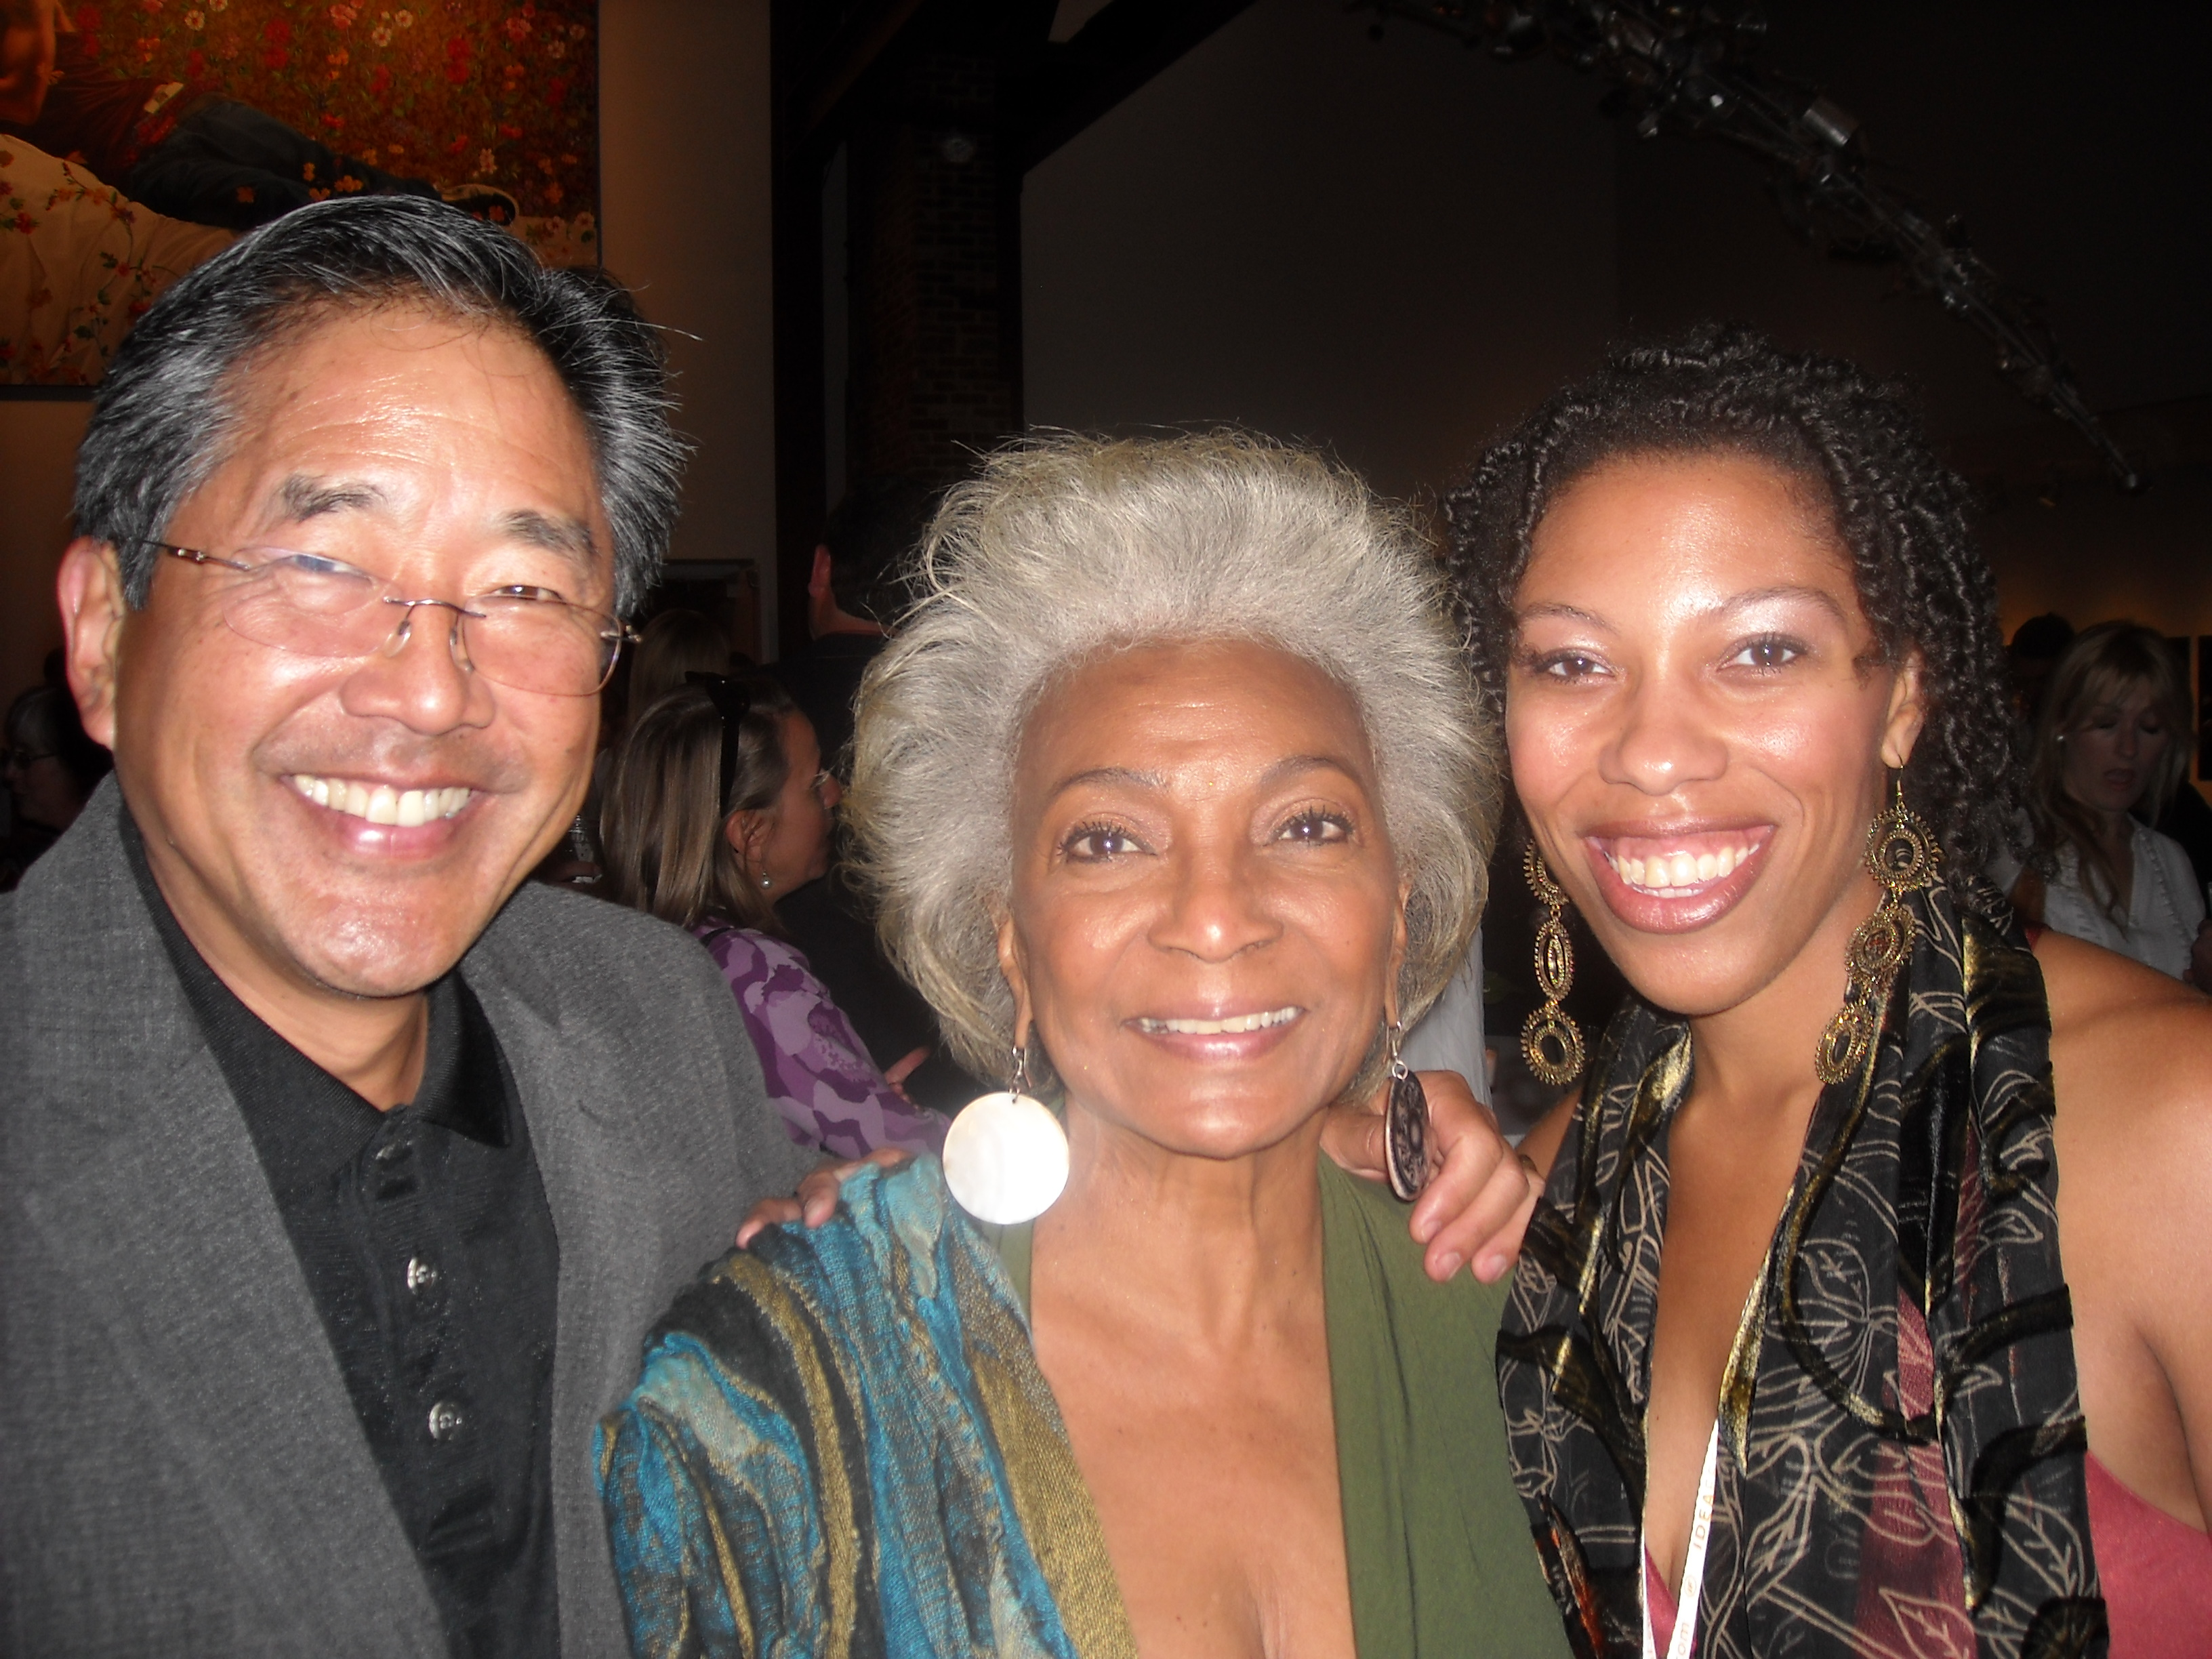 John Kobara, Nichelle Nichols and me at the IF10 Opening Reception